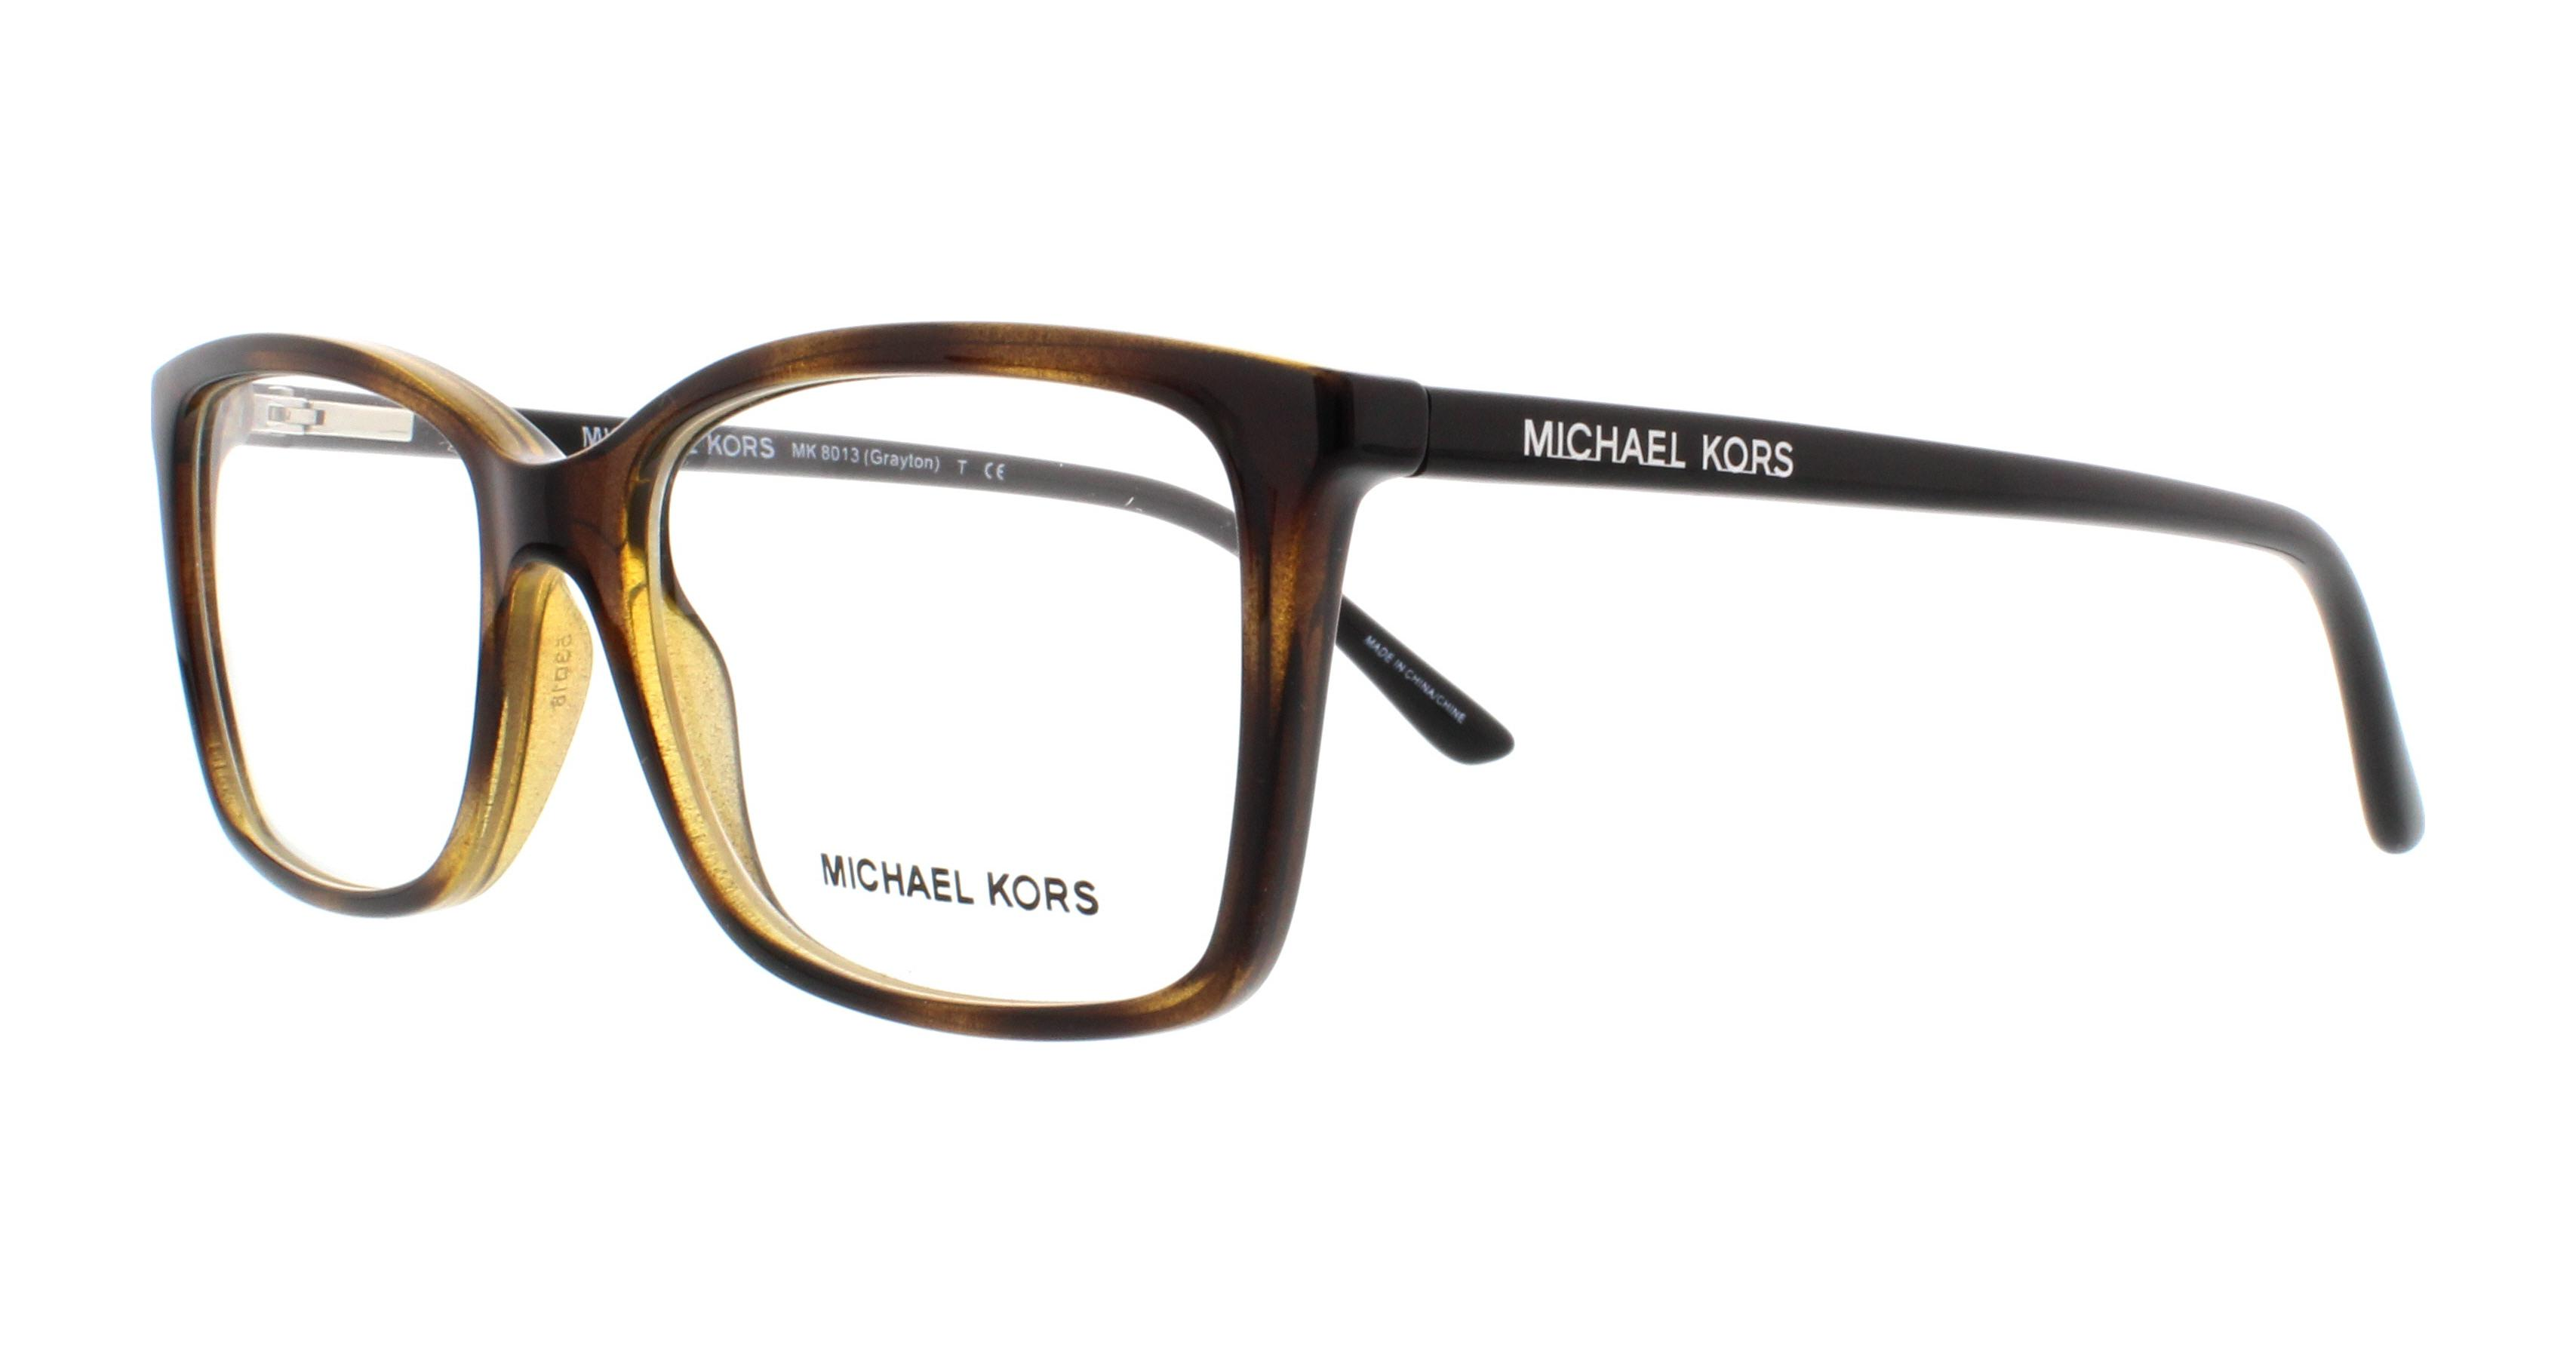 Picture of Michael Kors MK8013